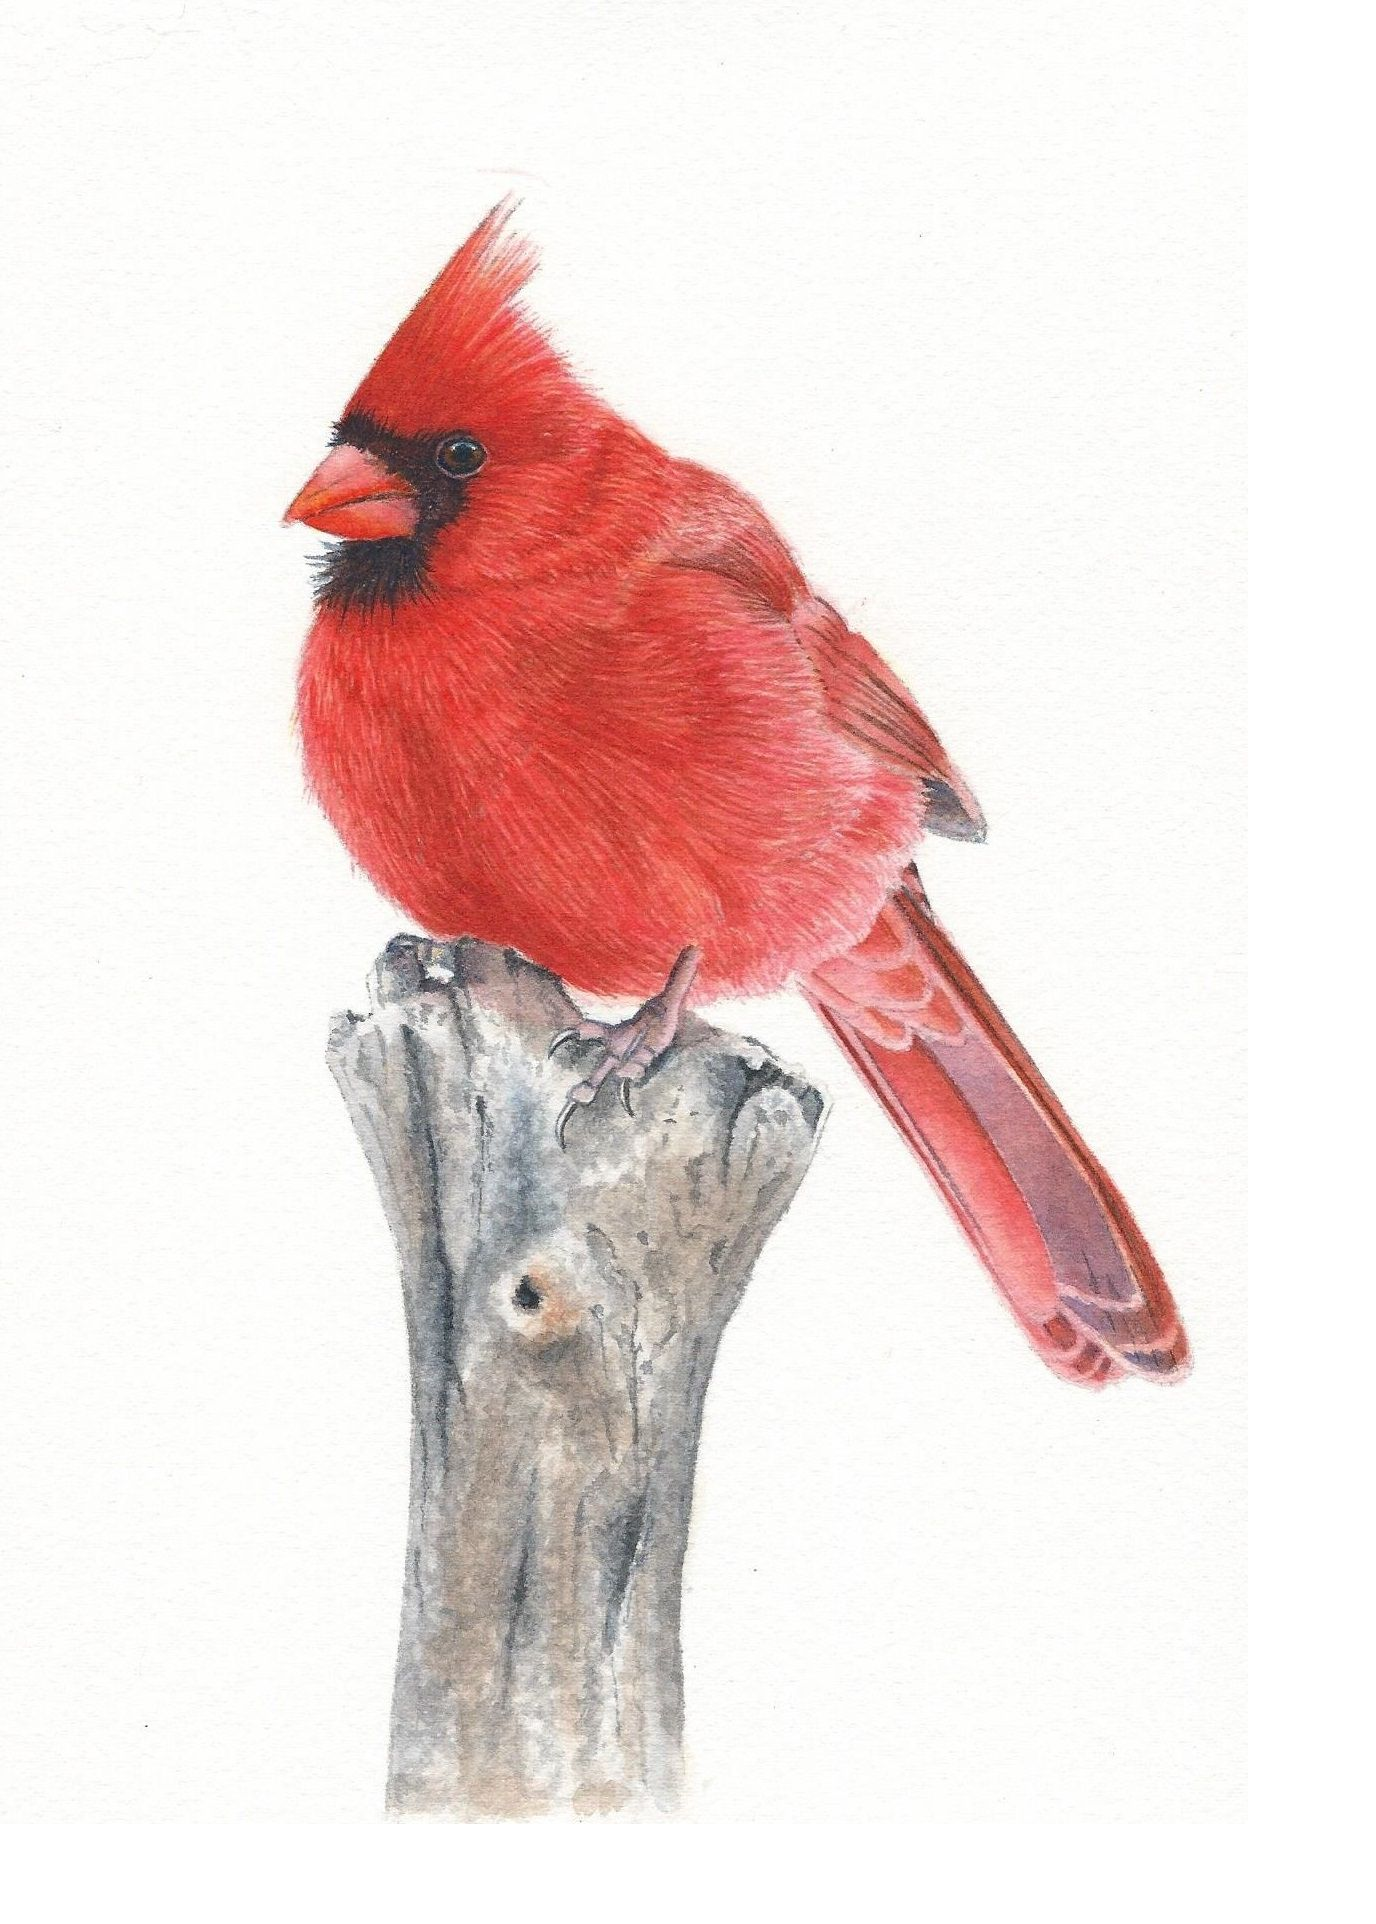 How To Paint A Cardinal In Watercolor Watercolors With Rebecca